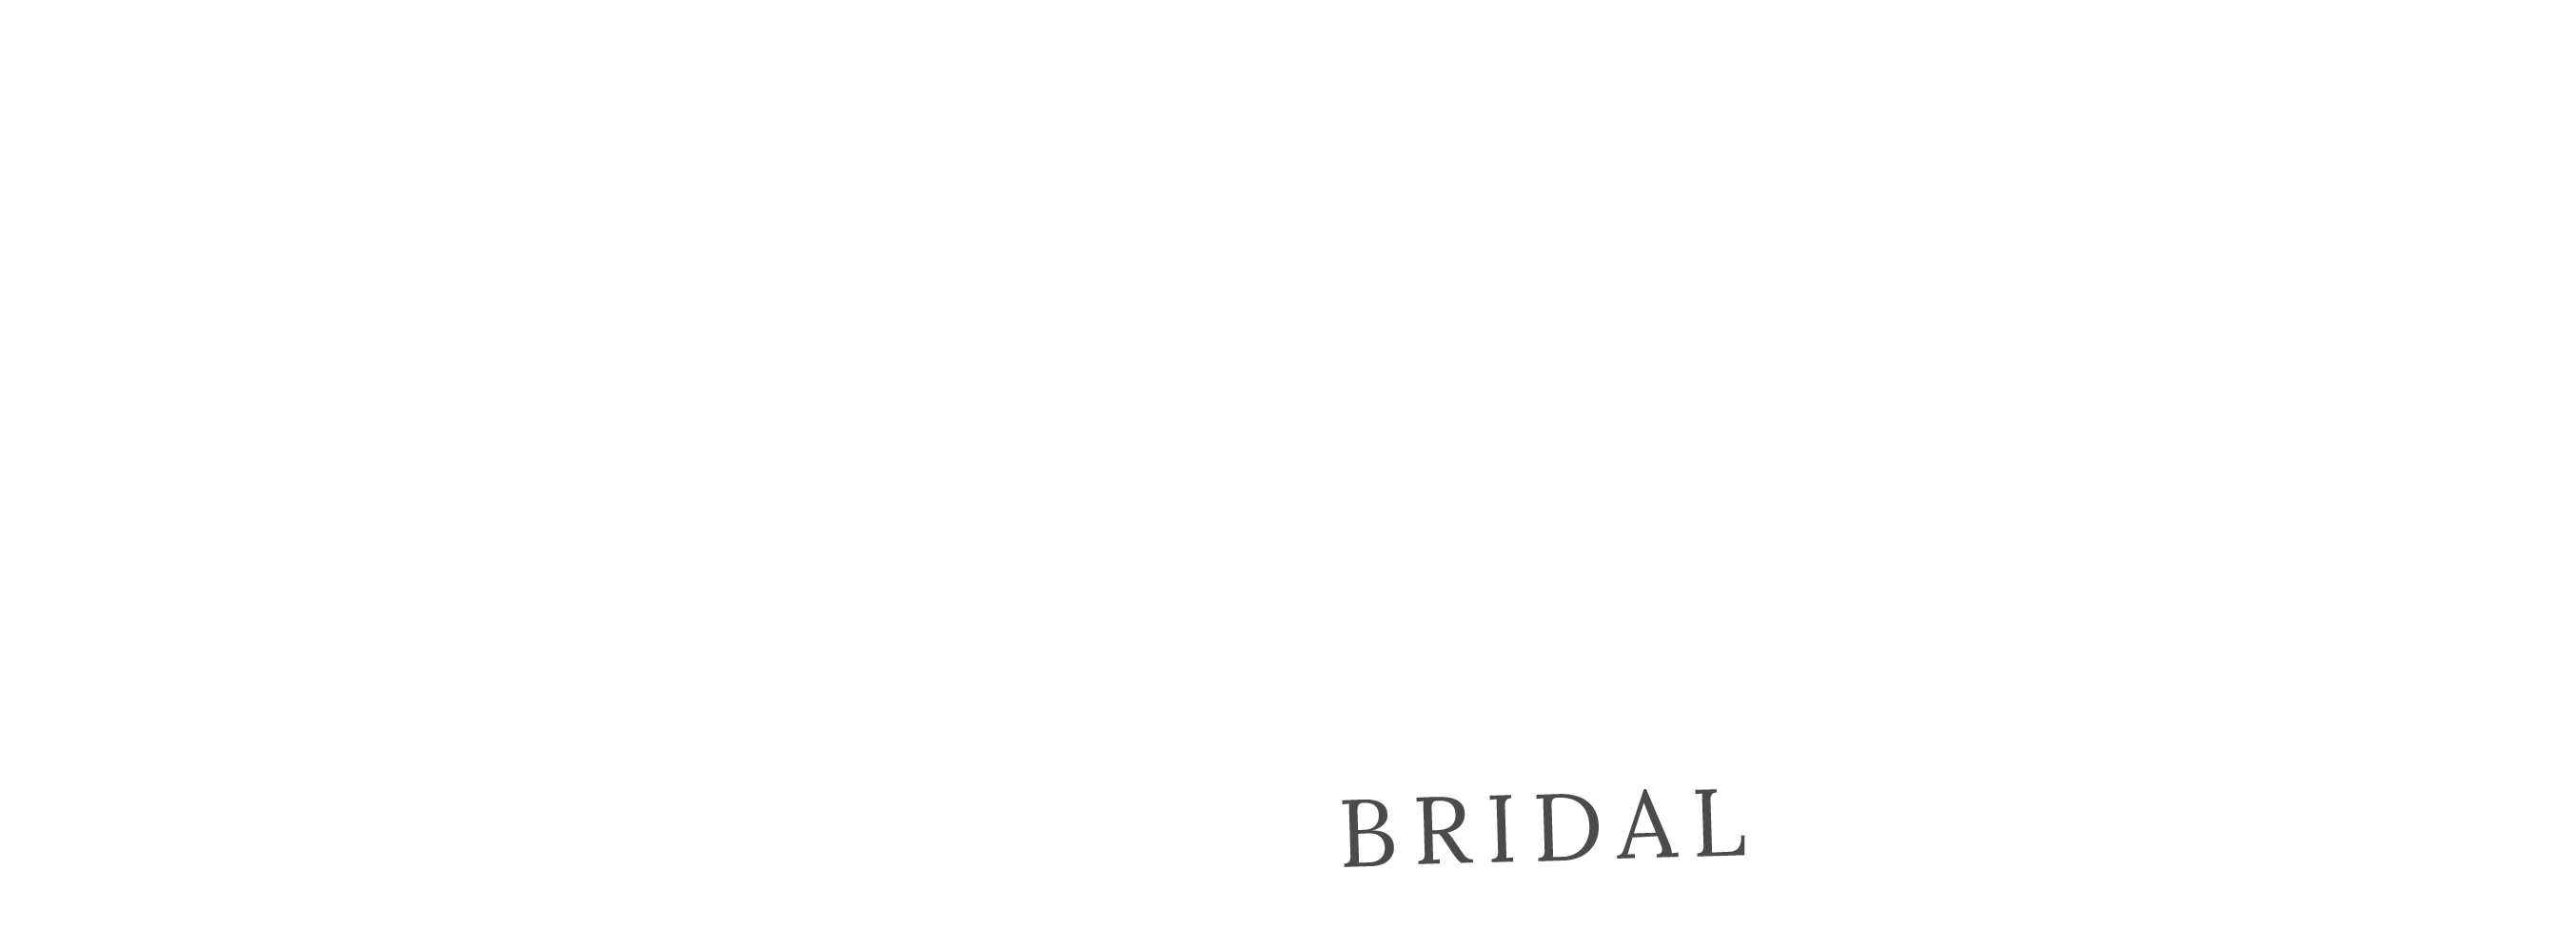 The Boutique & Co Bridal